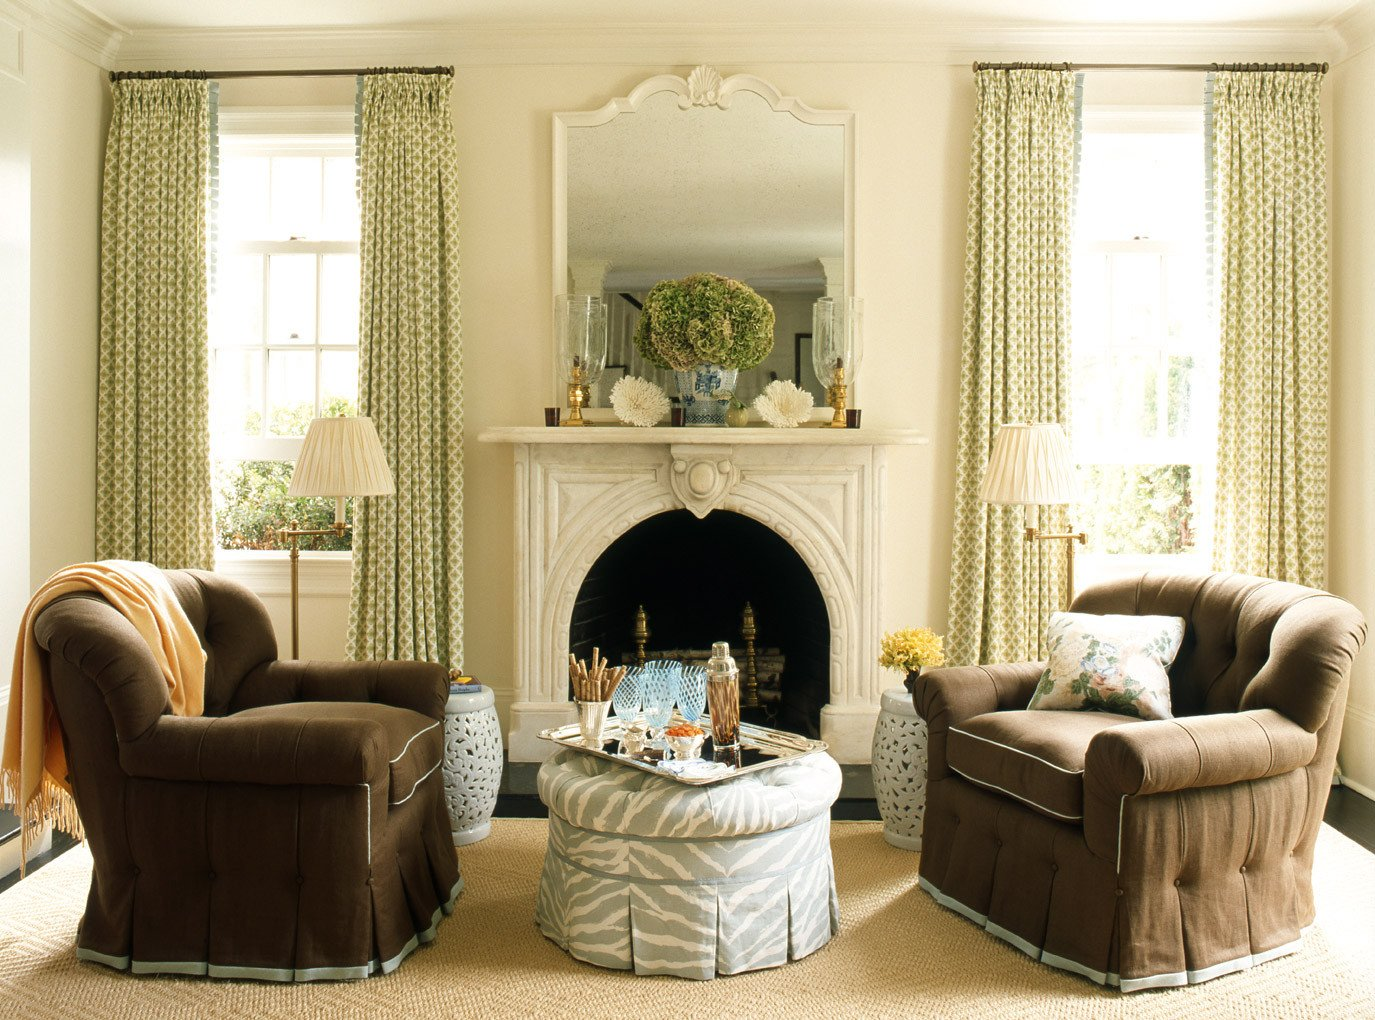 Traditional Style Living Room How to Decorate Series Finding Your Decorating Style